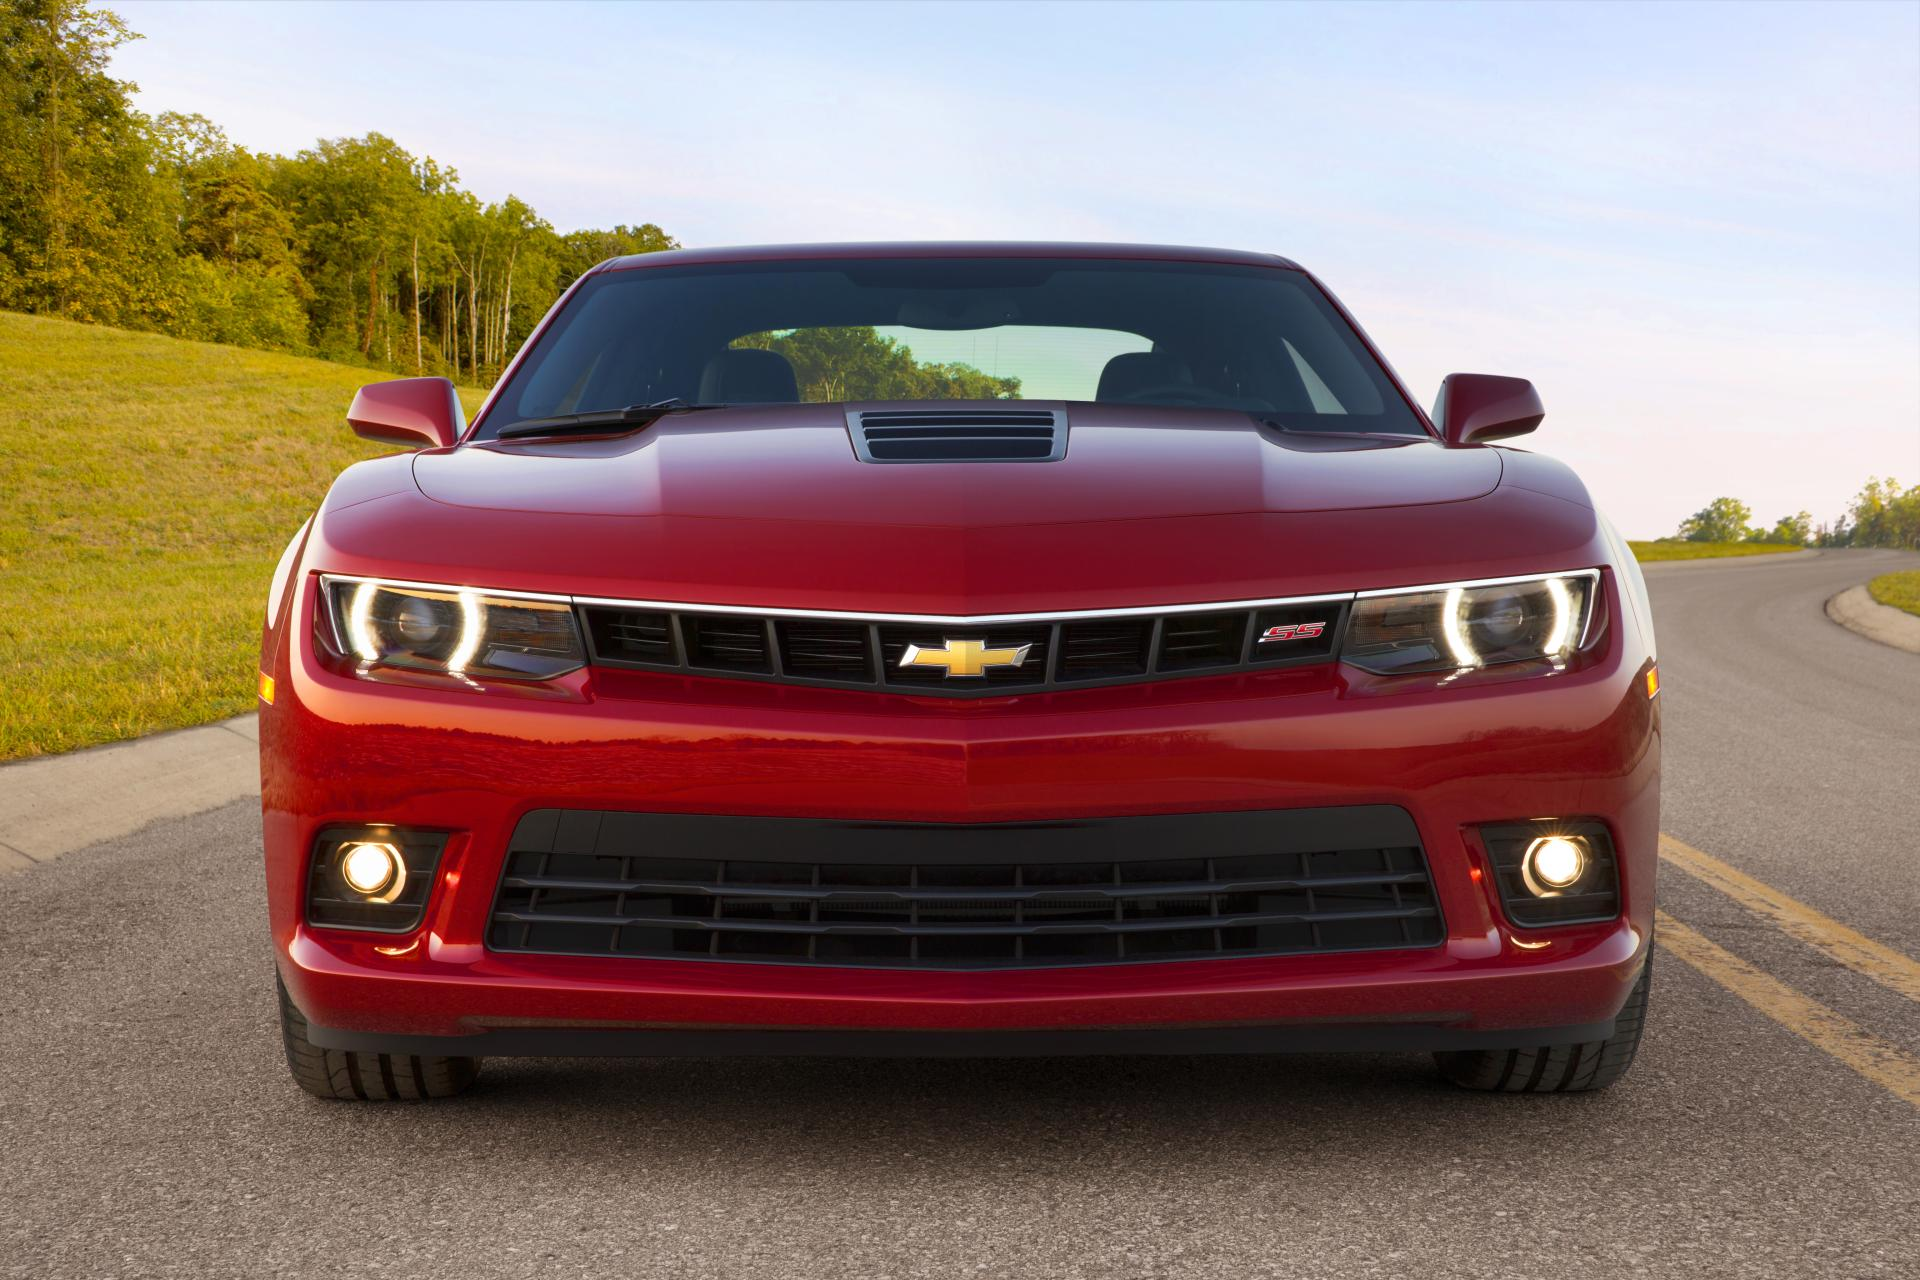 2014 Chevrolet Camaro SS News and Information